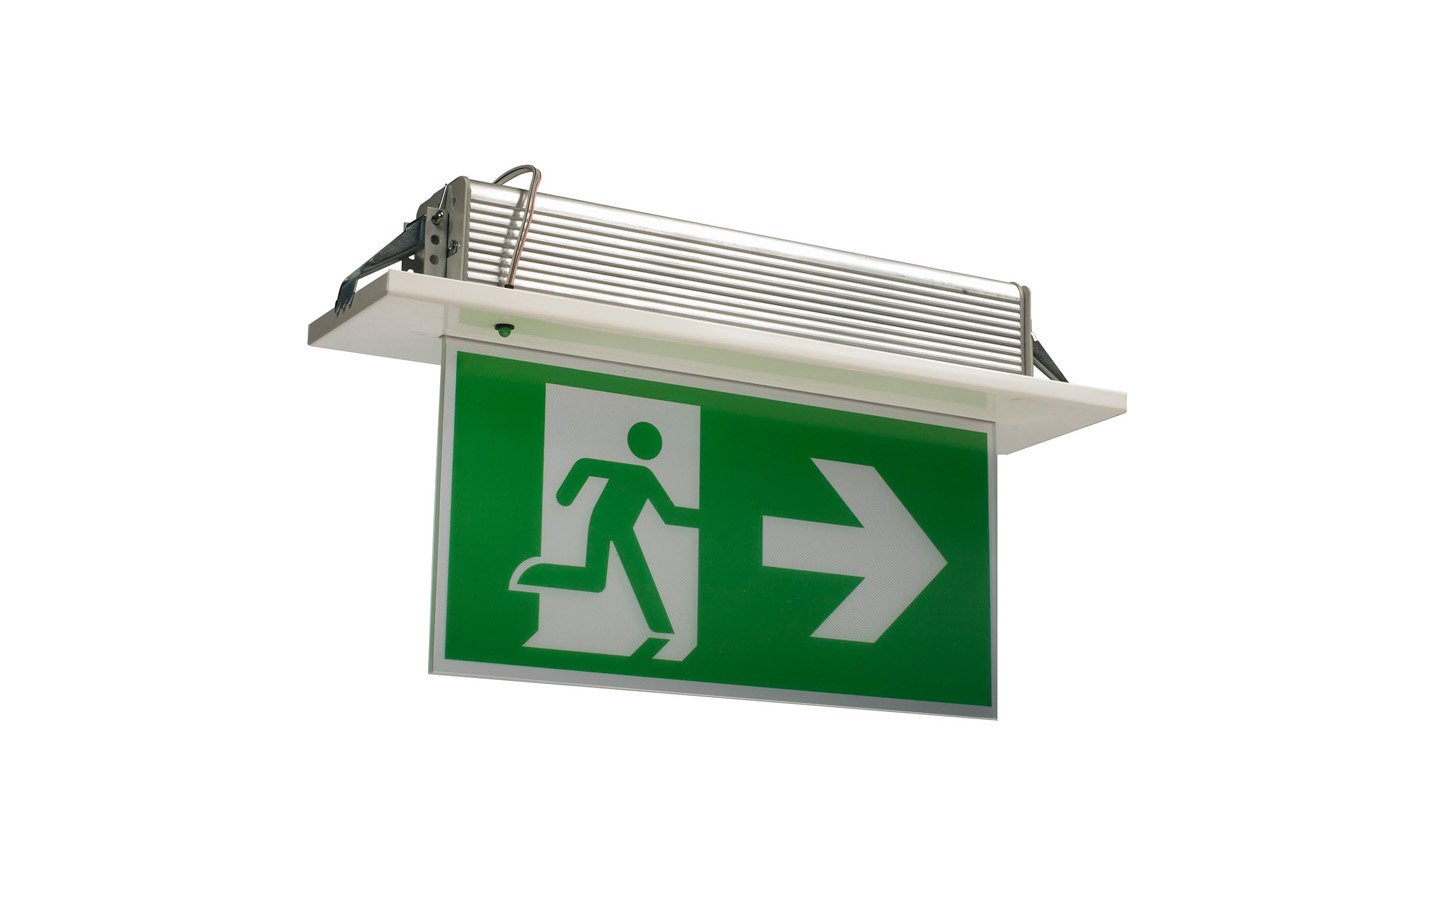 Bogdania Exit light – Recessed